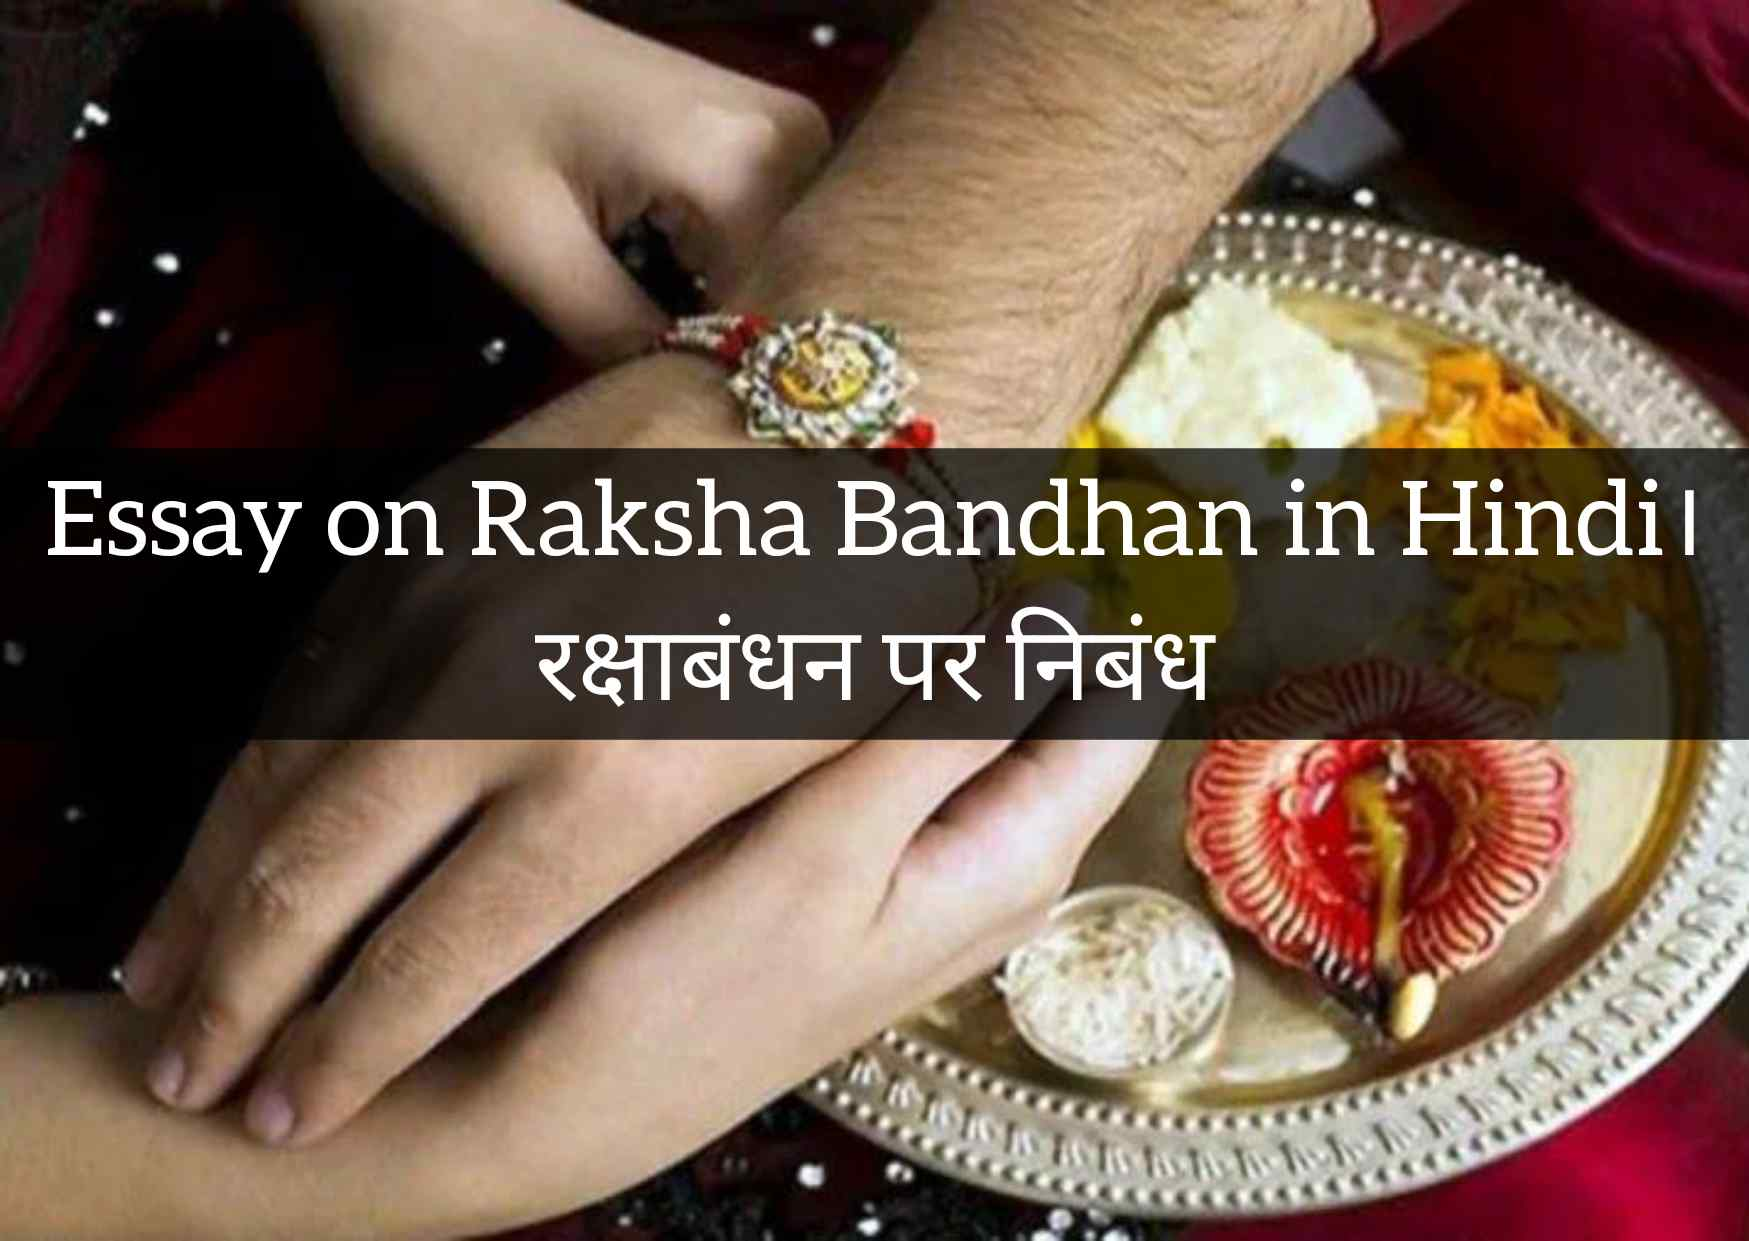 About Raksha Bandhan in Hindi, Raksha Bandhan Essay in Hindi, Importance of Raksha Bandhan in Hindi